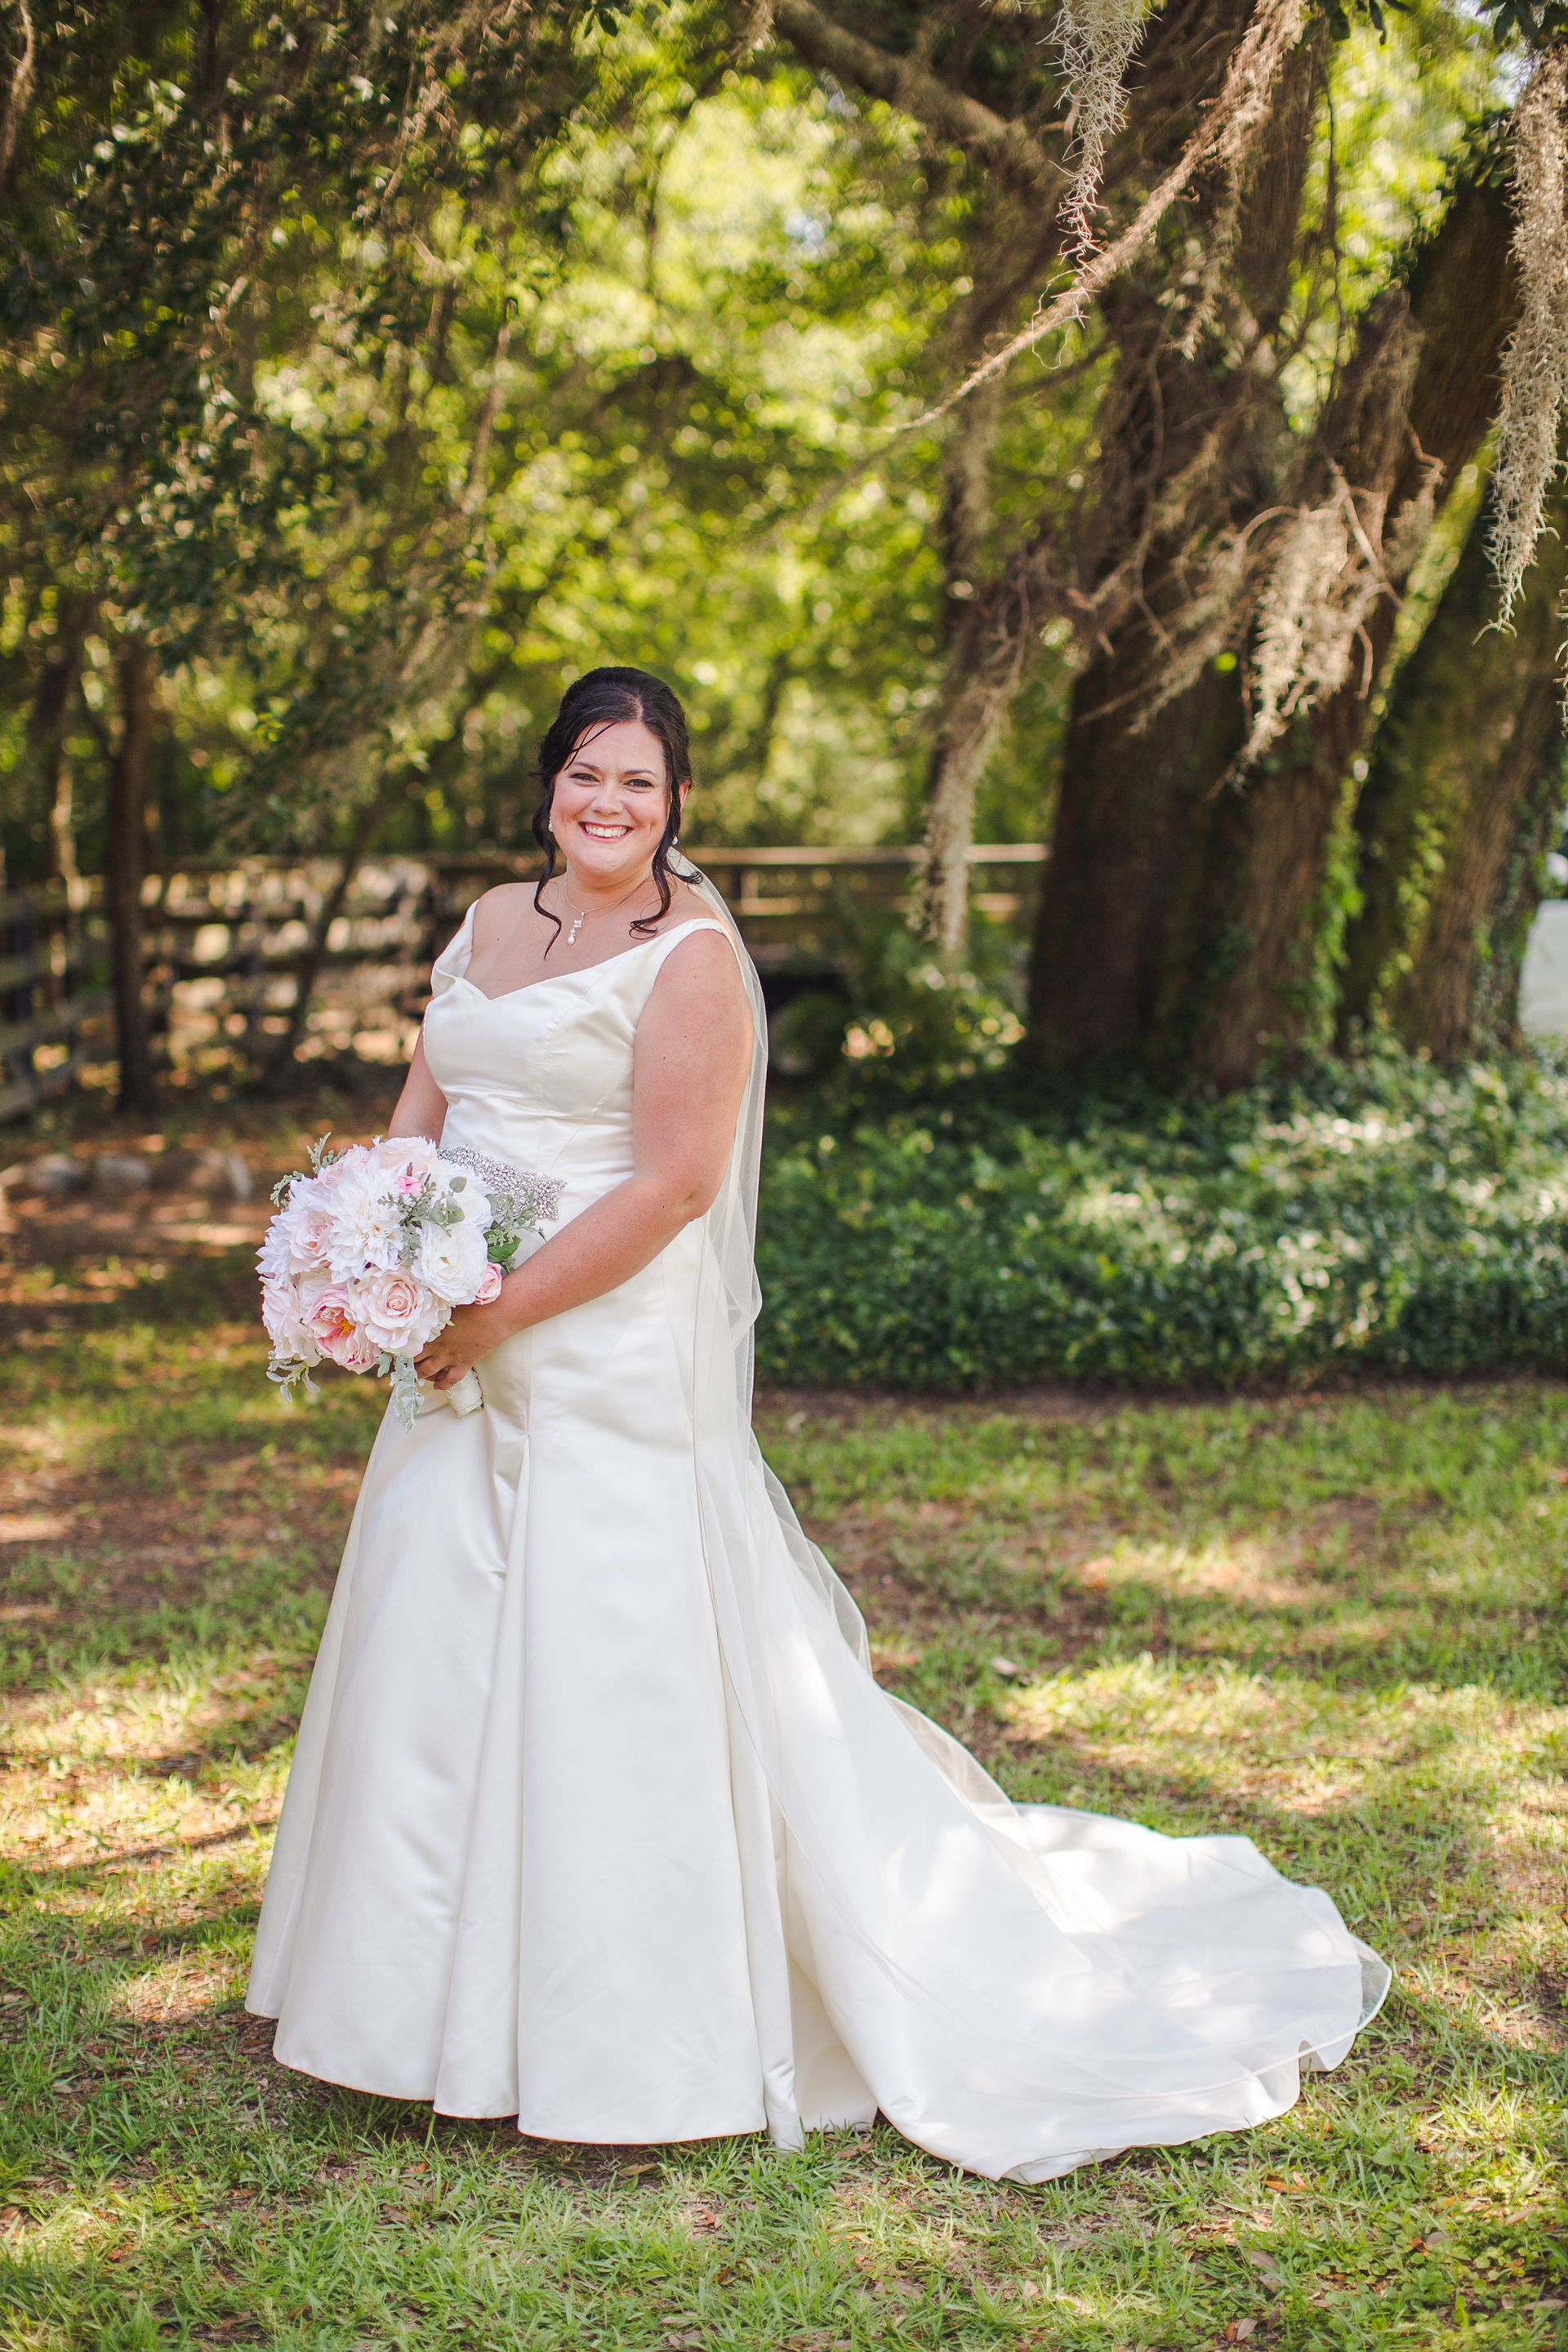 White satin, fit and flare wedding dress, chapel-length train, v-neck, bedazzled belt // Richard Bell Photography